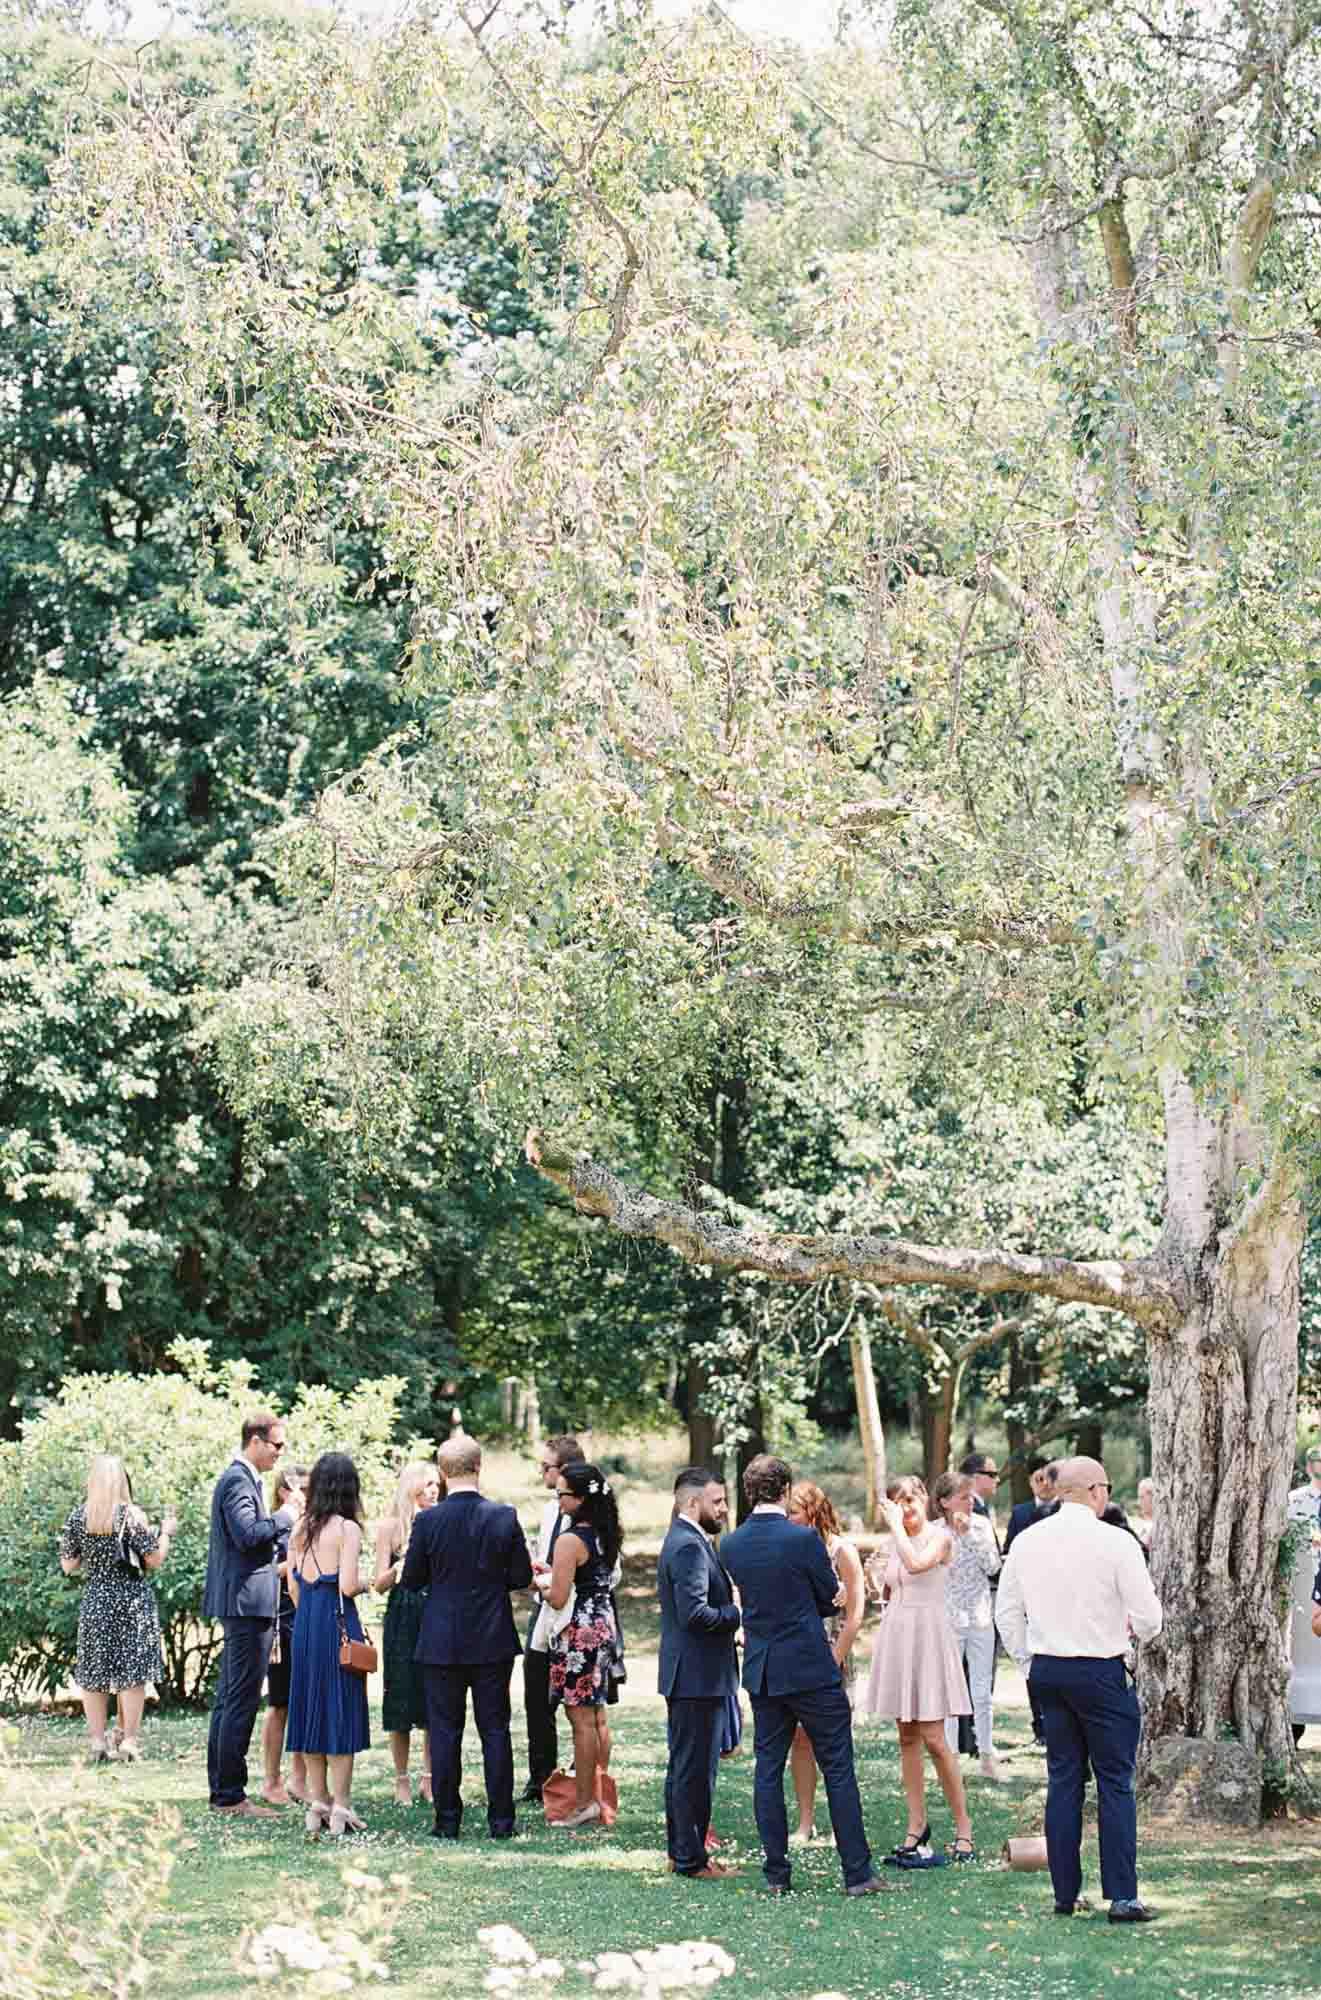 Guests mingling in the grounds of Chiddingstone Castle wedding